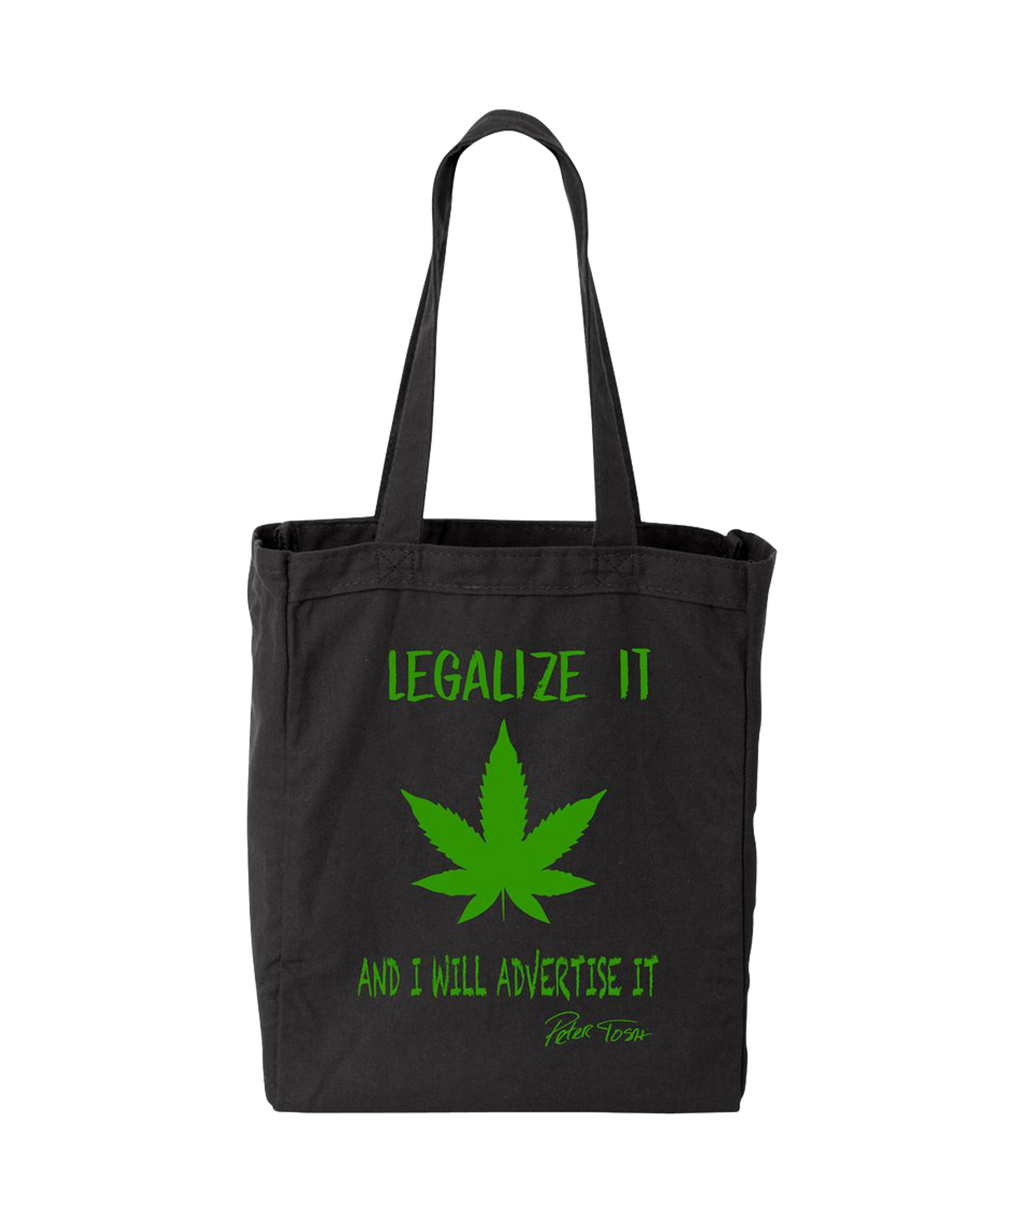 Legalize It Tote